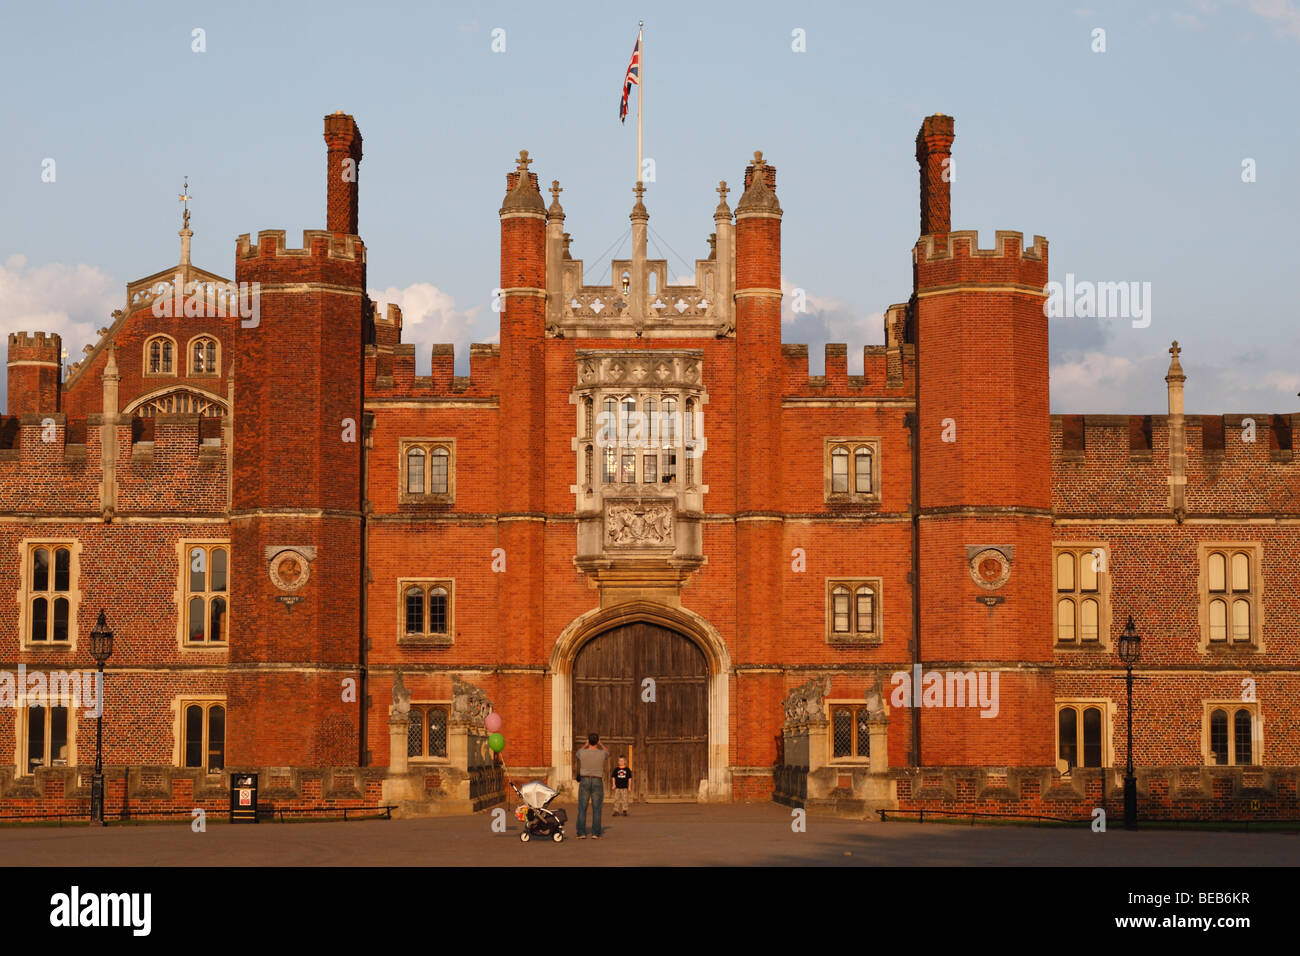 A father photographs his son in front of the main entrance to Hampton Court Palace, Surrey, UK on a lovely summer's - Stock Image